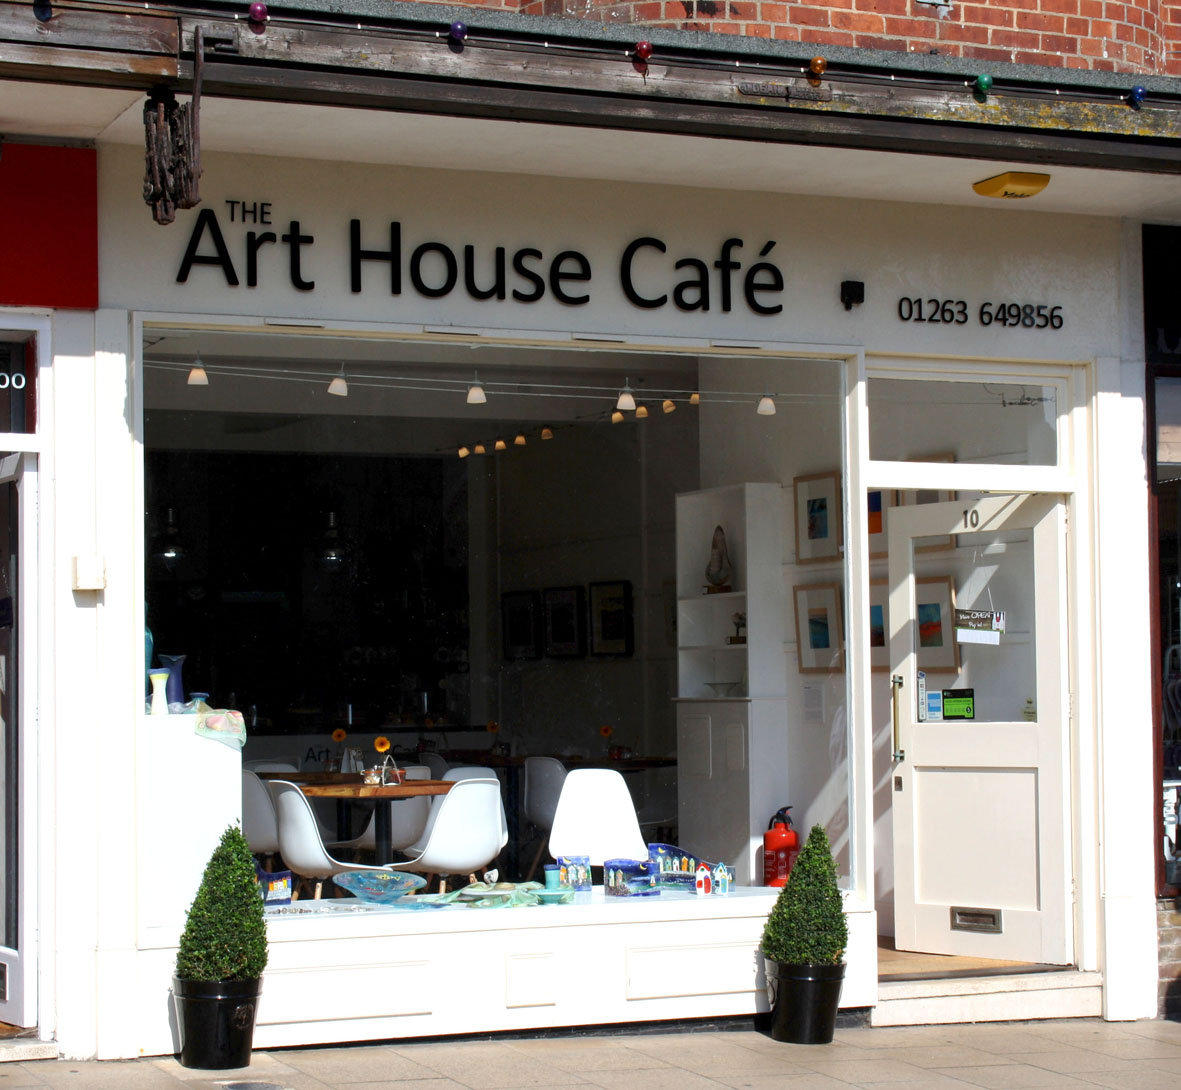 If you are lookoing for Usch's pots and bowls in Norfolk, just come and have a look at Art Hose Café in Cromer! The Art House Café at 10 High Street, is directly opposite the church in the heart of Cromer. It's in a great location in the centre of town with a lovely view of the church and people are finding the space a lovely calm and relaxing place to come and enjoy a delicious coffee and cake. The former ladies clothes shop has been transformed into a light and airy space in which to relax and savor delicious refreshments whilst enjoying the talents of contemporary East Anglian artists. Showing a wide range of work from watercolour and oil paintings, ceramics, glass, driftwood art, jewellery, silk scarves and greetings cards so hopefully there is something for everyone to enjoy. The exhibitions change throughout the year and there will always be something interesting and thought provoking to see. We look forward to welcoming you to the Art House Café. Art House Café 10 High Street Cromer Norfolk NR27 9HG Telephone: 01263 649856